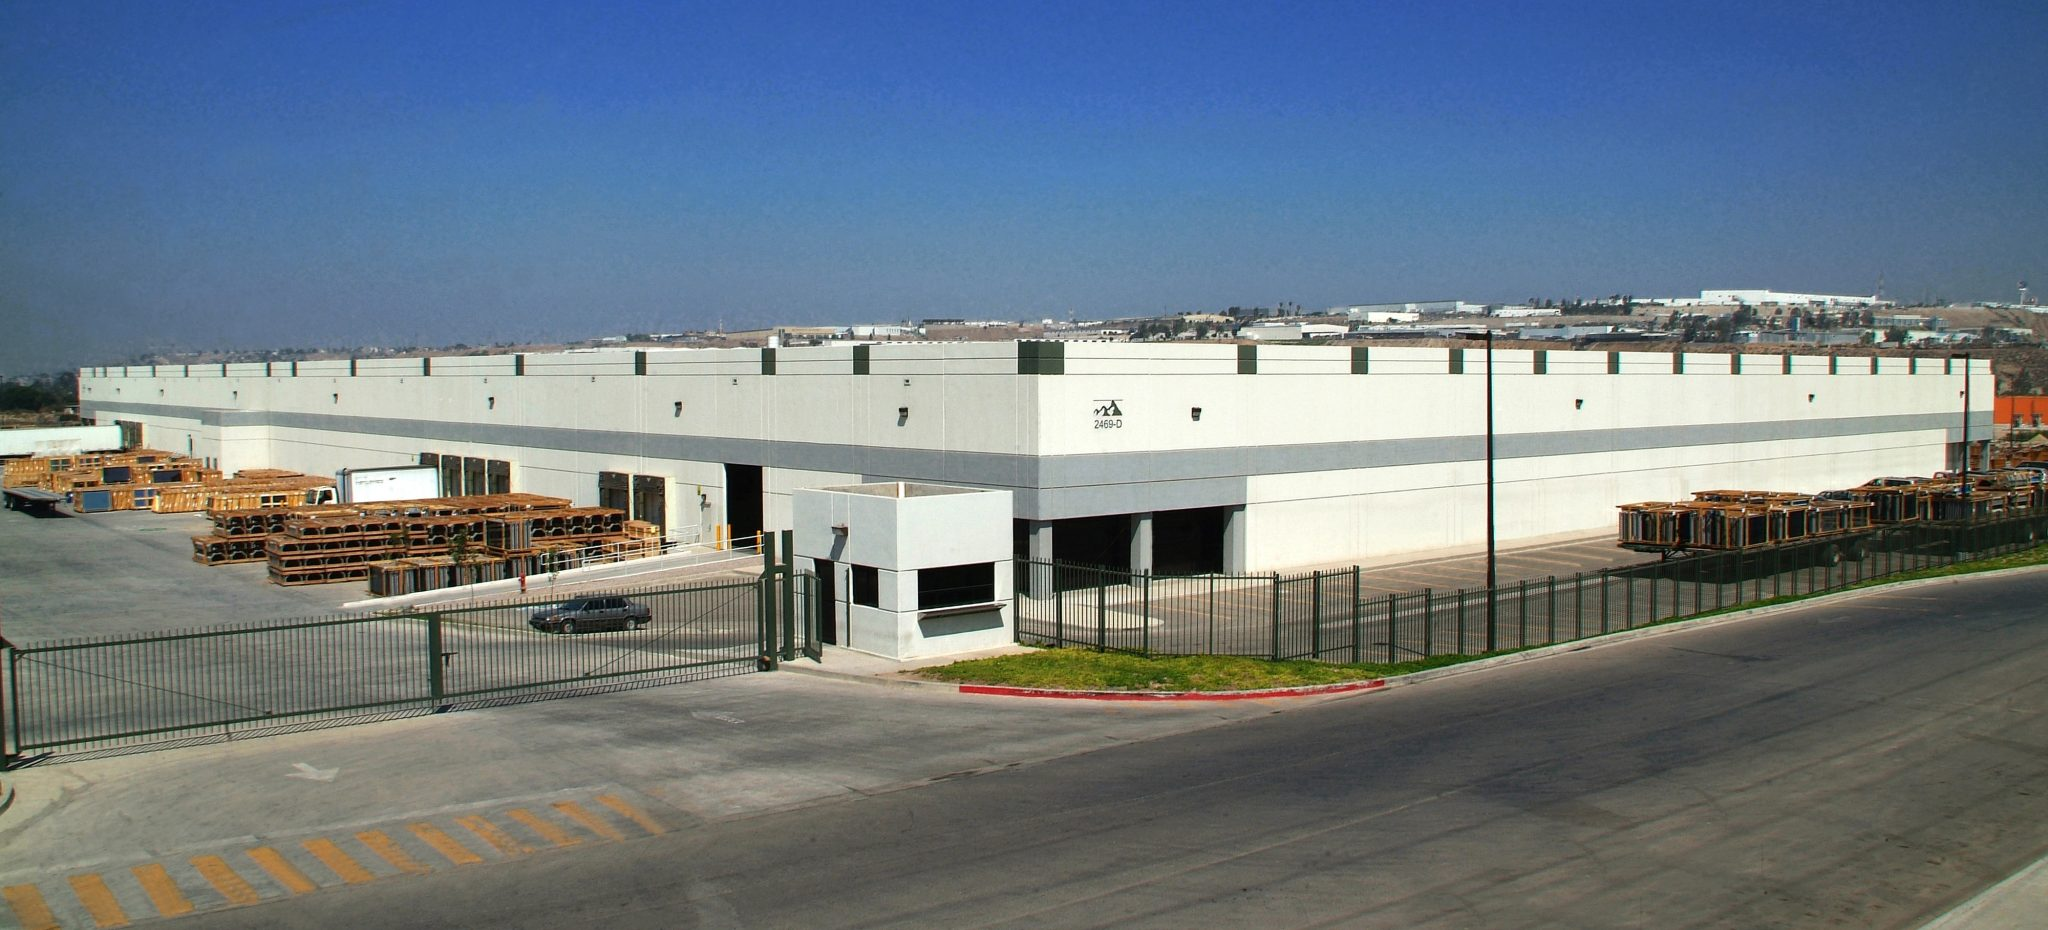 Panoramic shot of Verde - Realty industrial facility in Tijuana, Baja California.